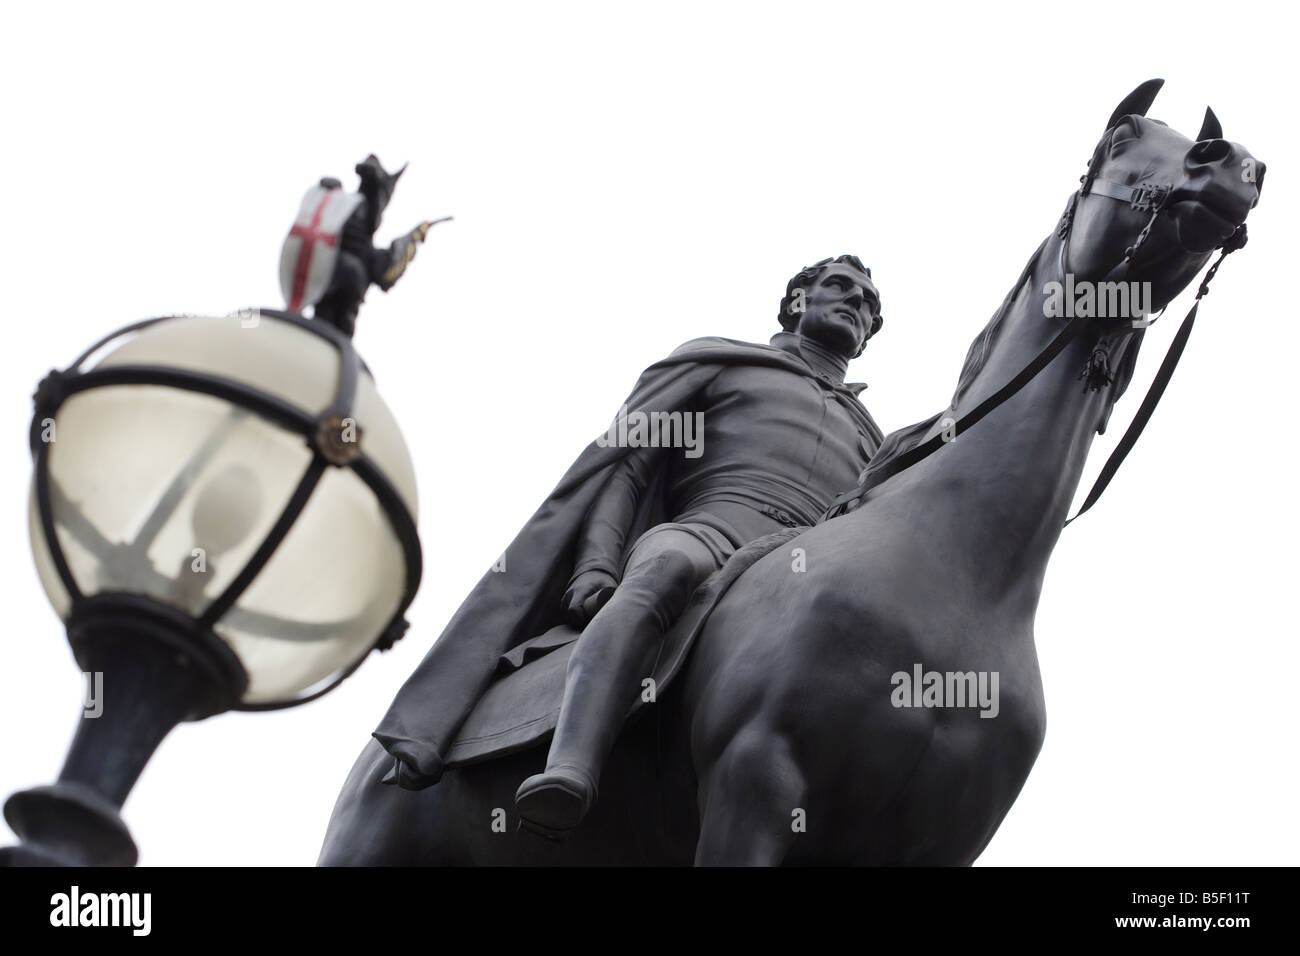 Statue of the Duke of Wellington at Bank City of London - Stock Image